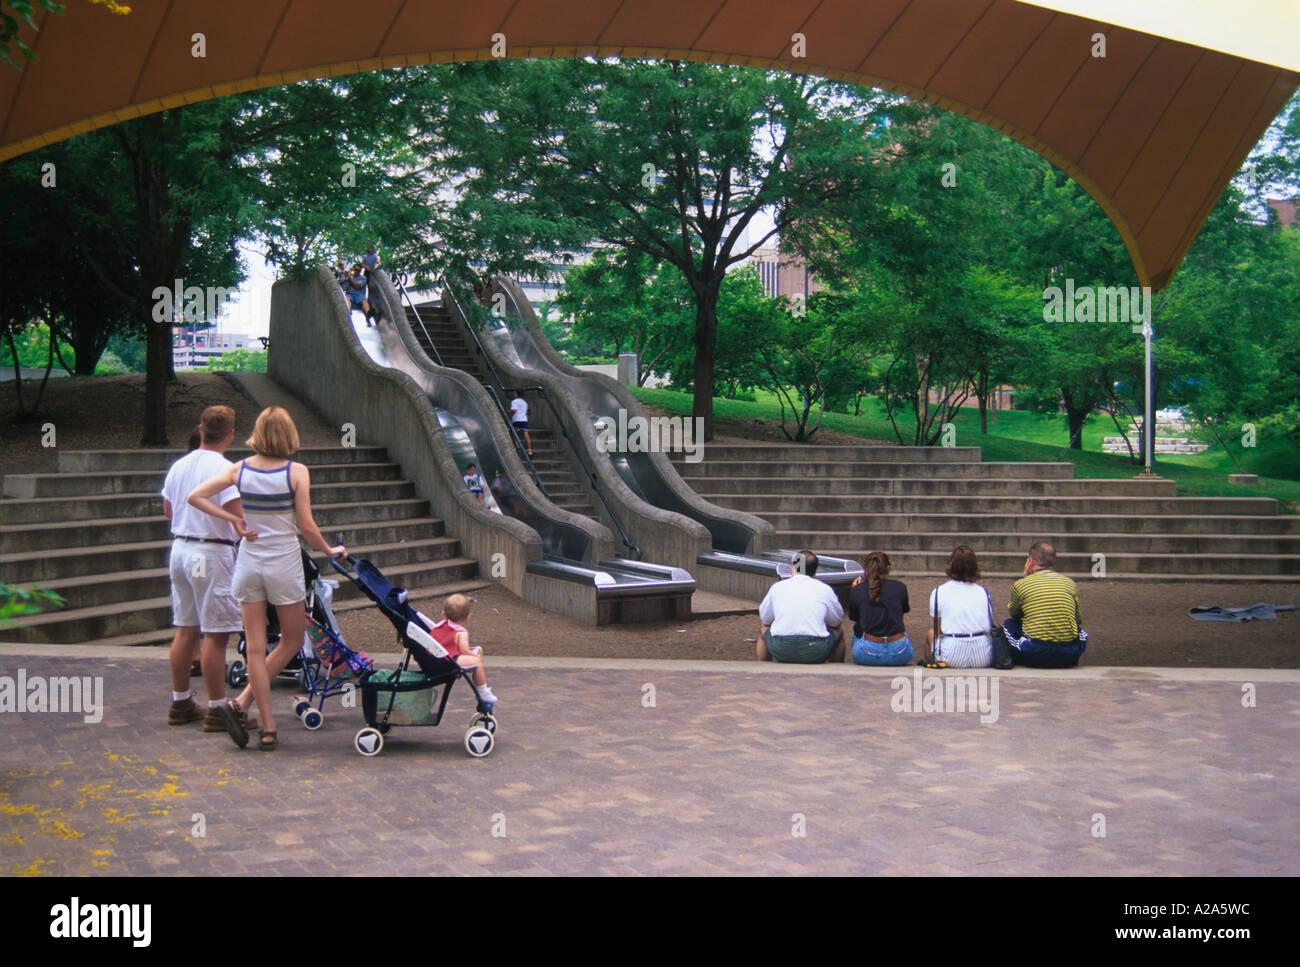 Children playing at a playground in the Gene Leahy Mall in downtown Omaha, Nebraska. Stock Photo